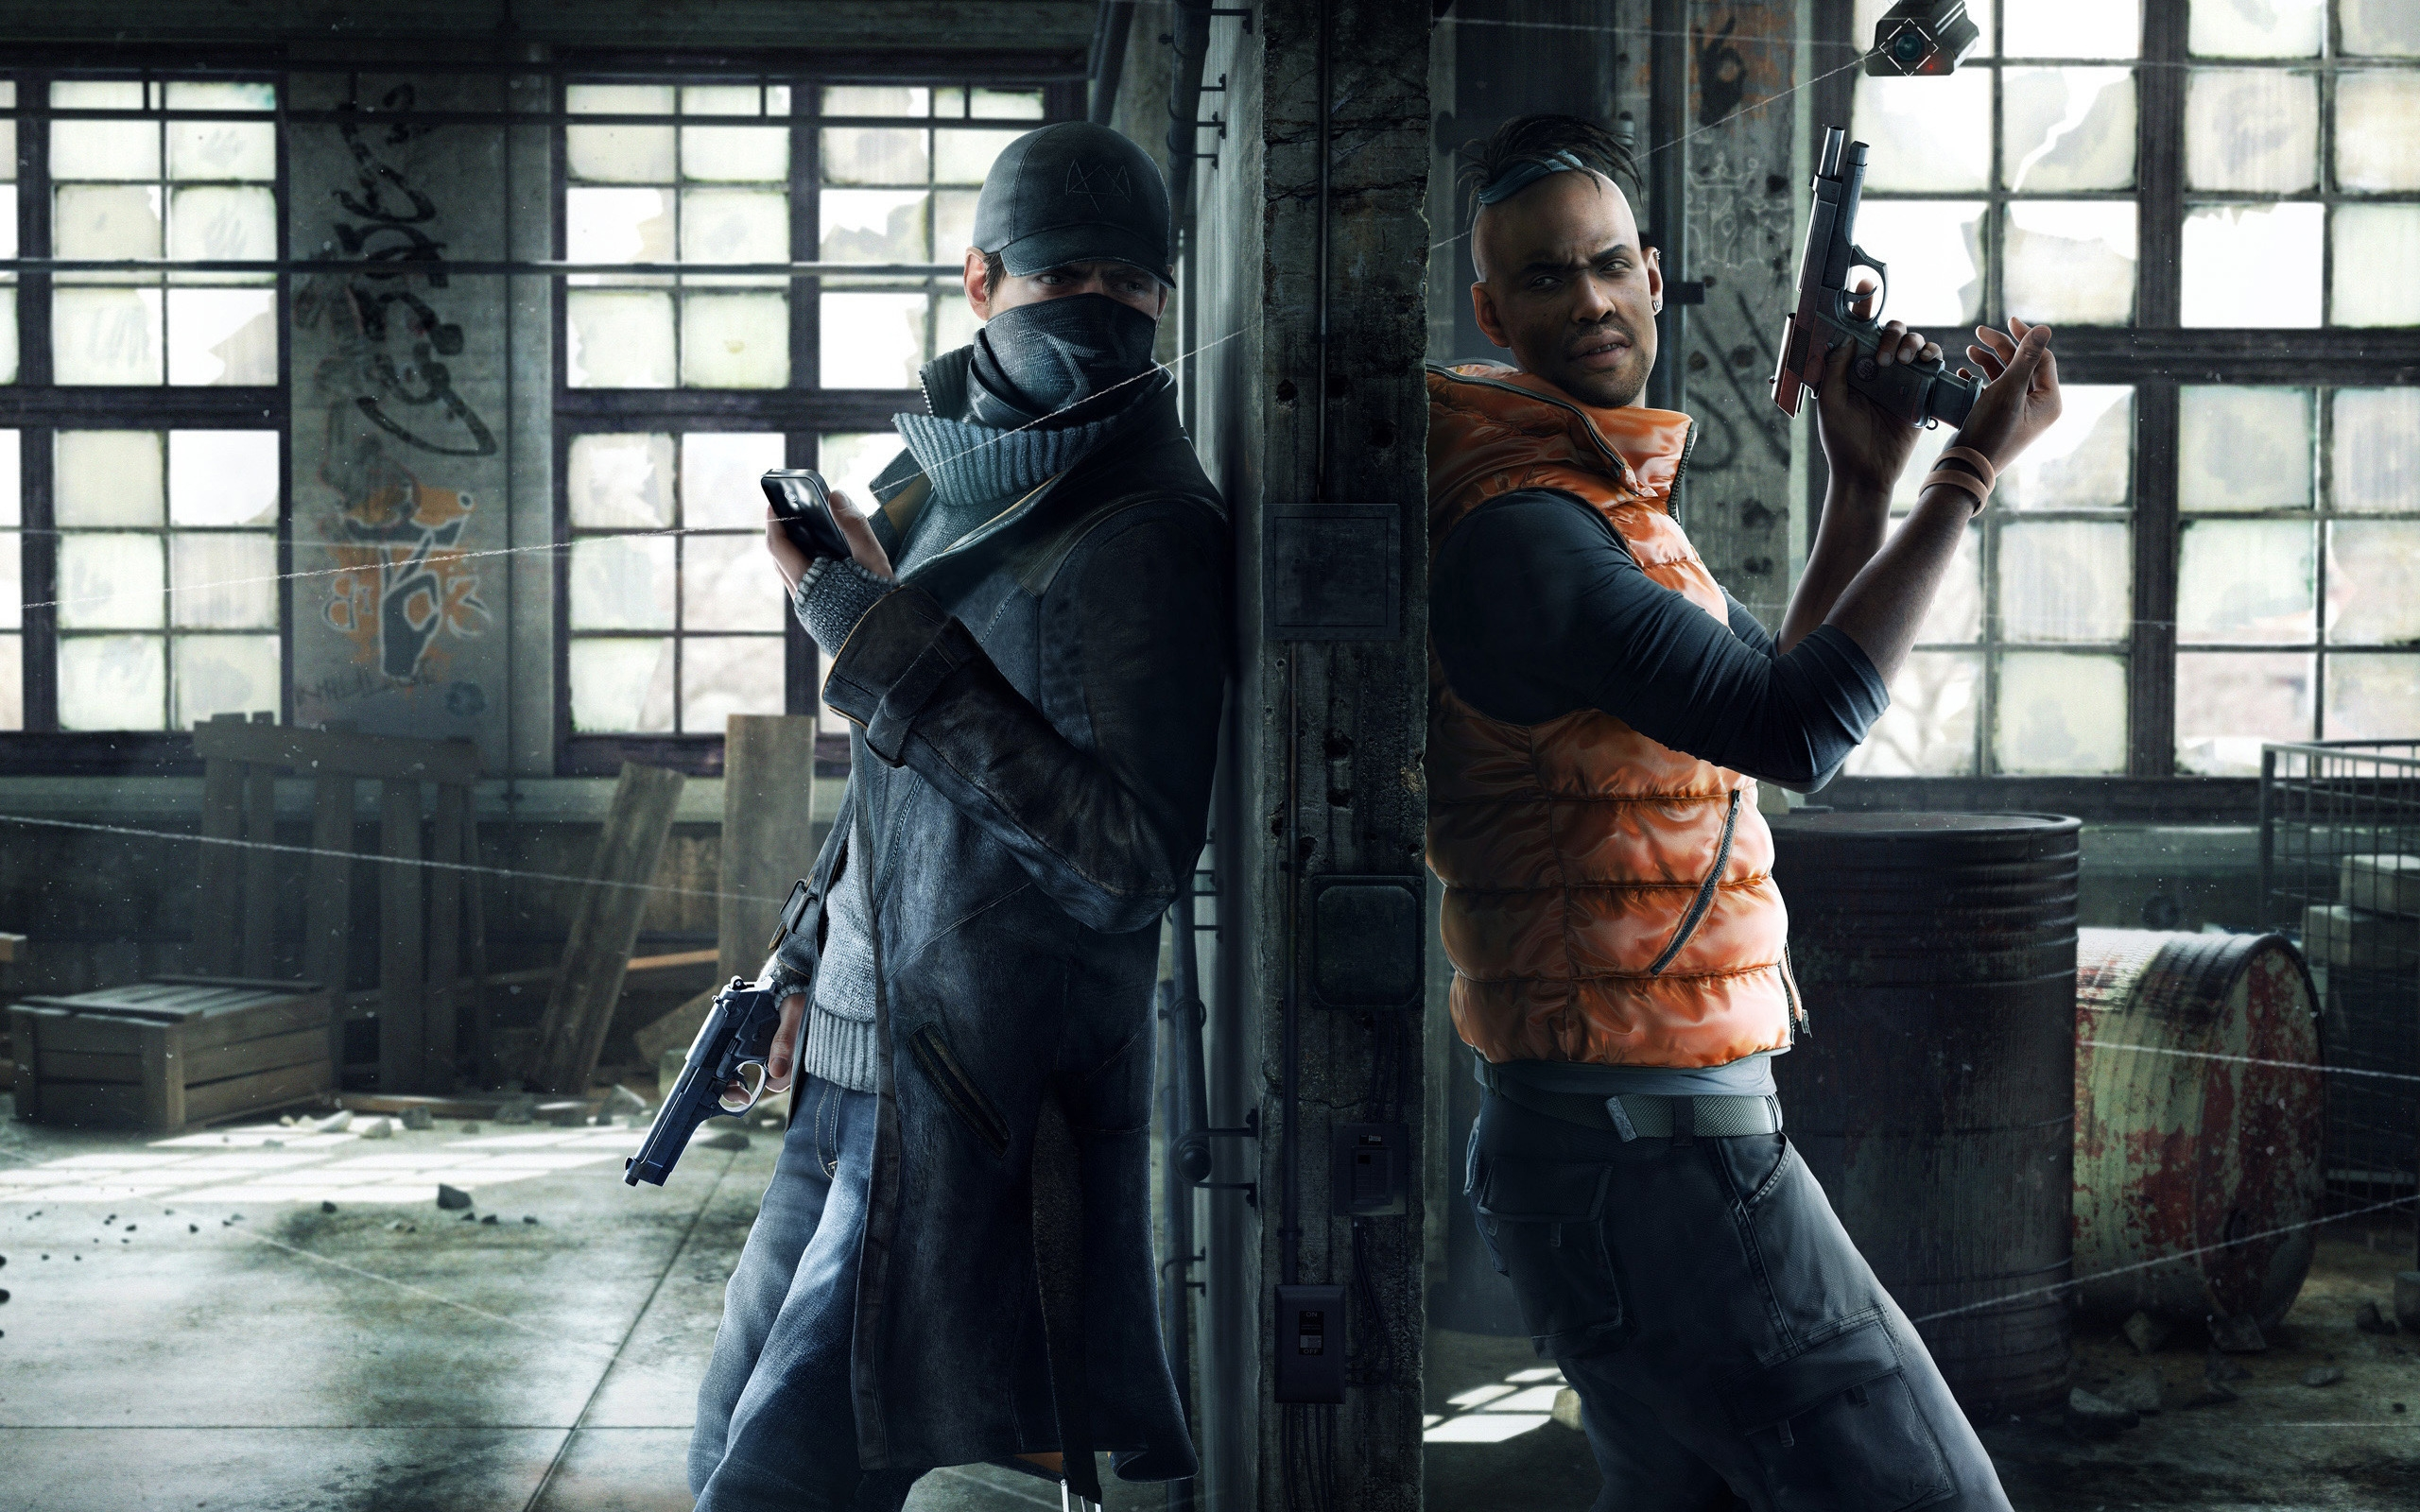 Watchdogs Aiden and Wade for 2560 x 1600 widescreen resolution